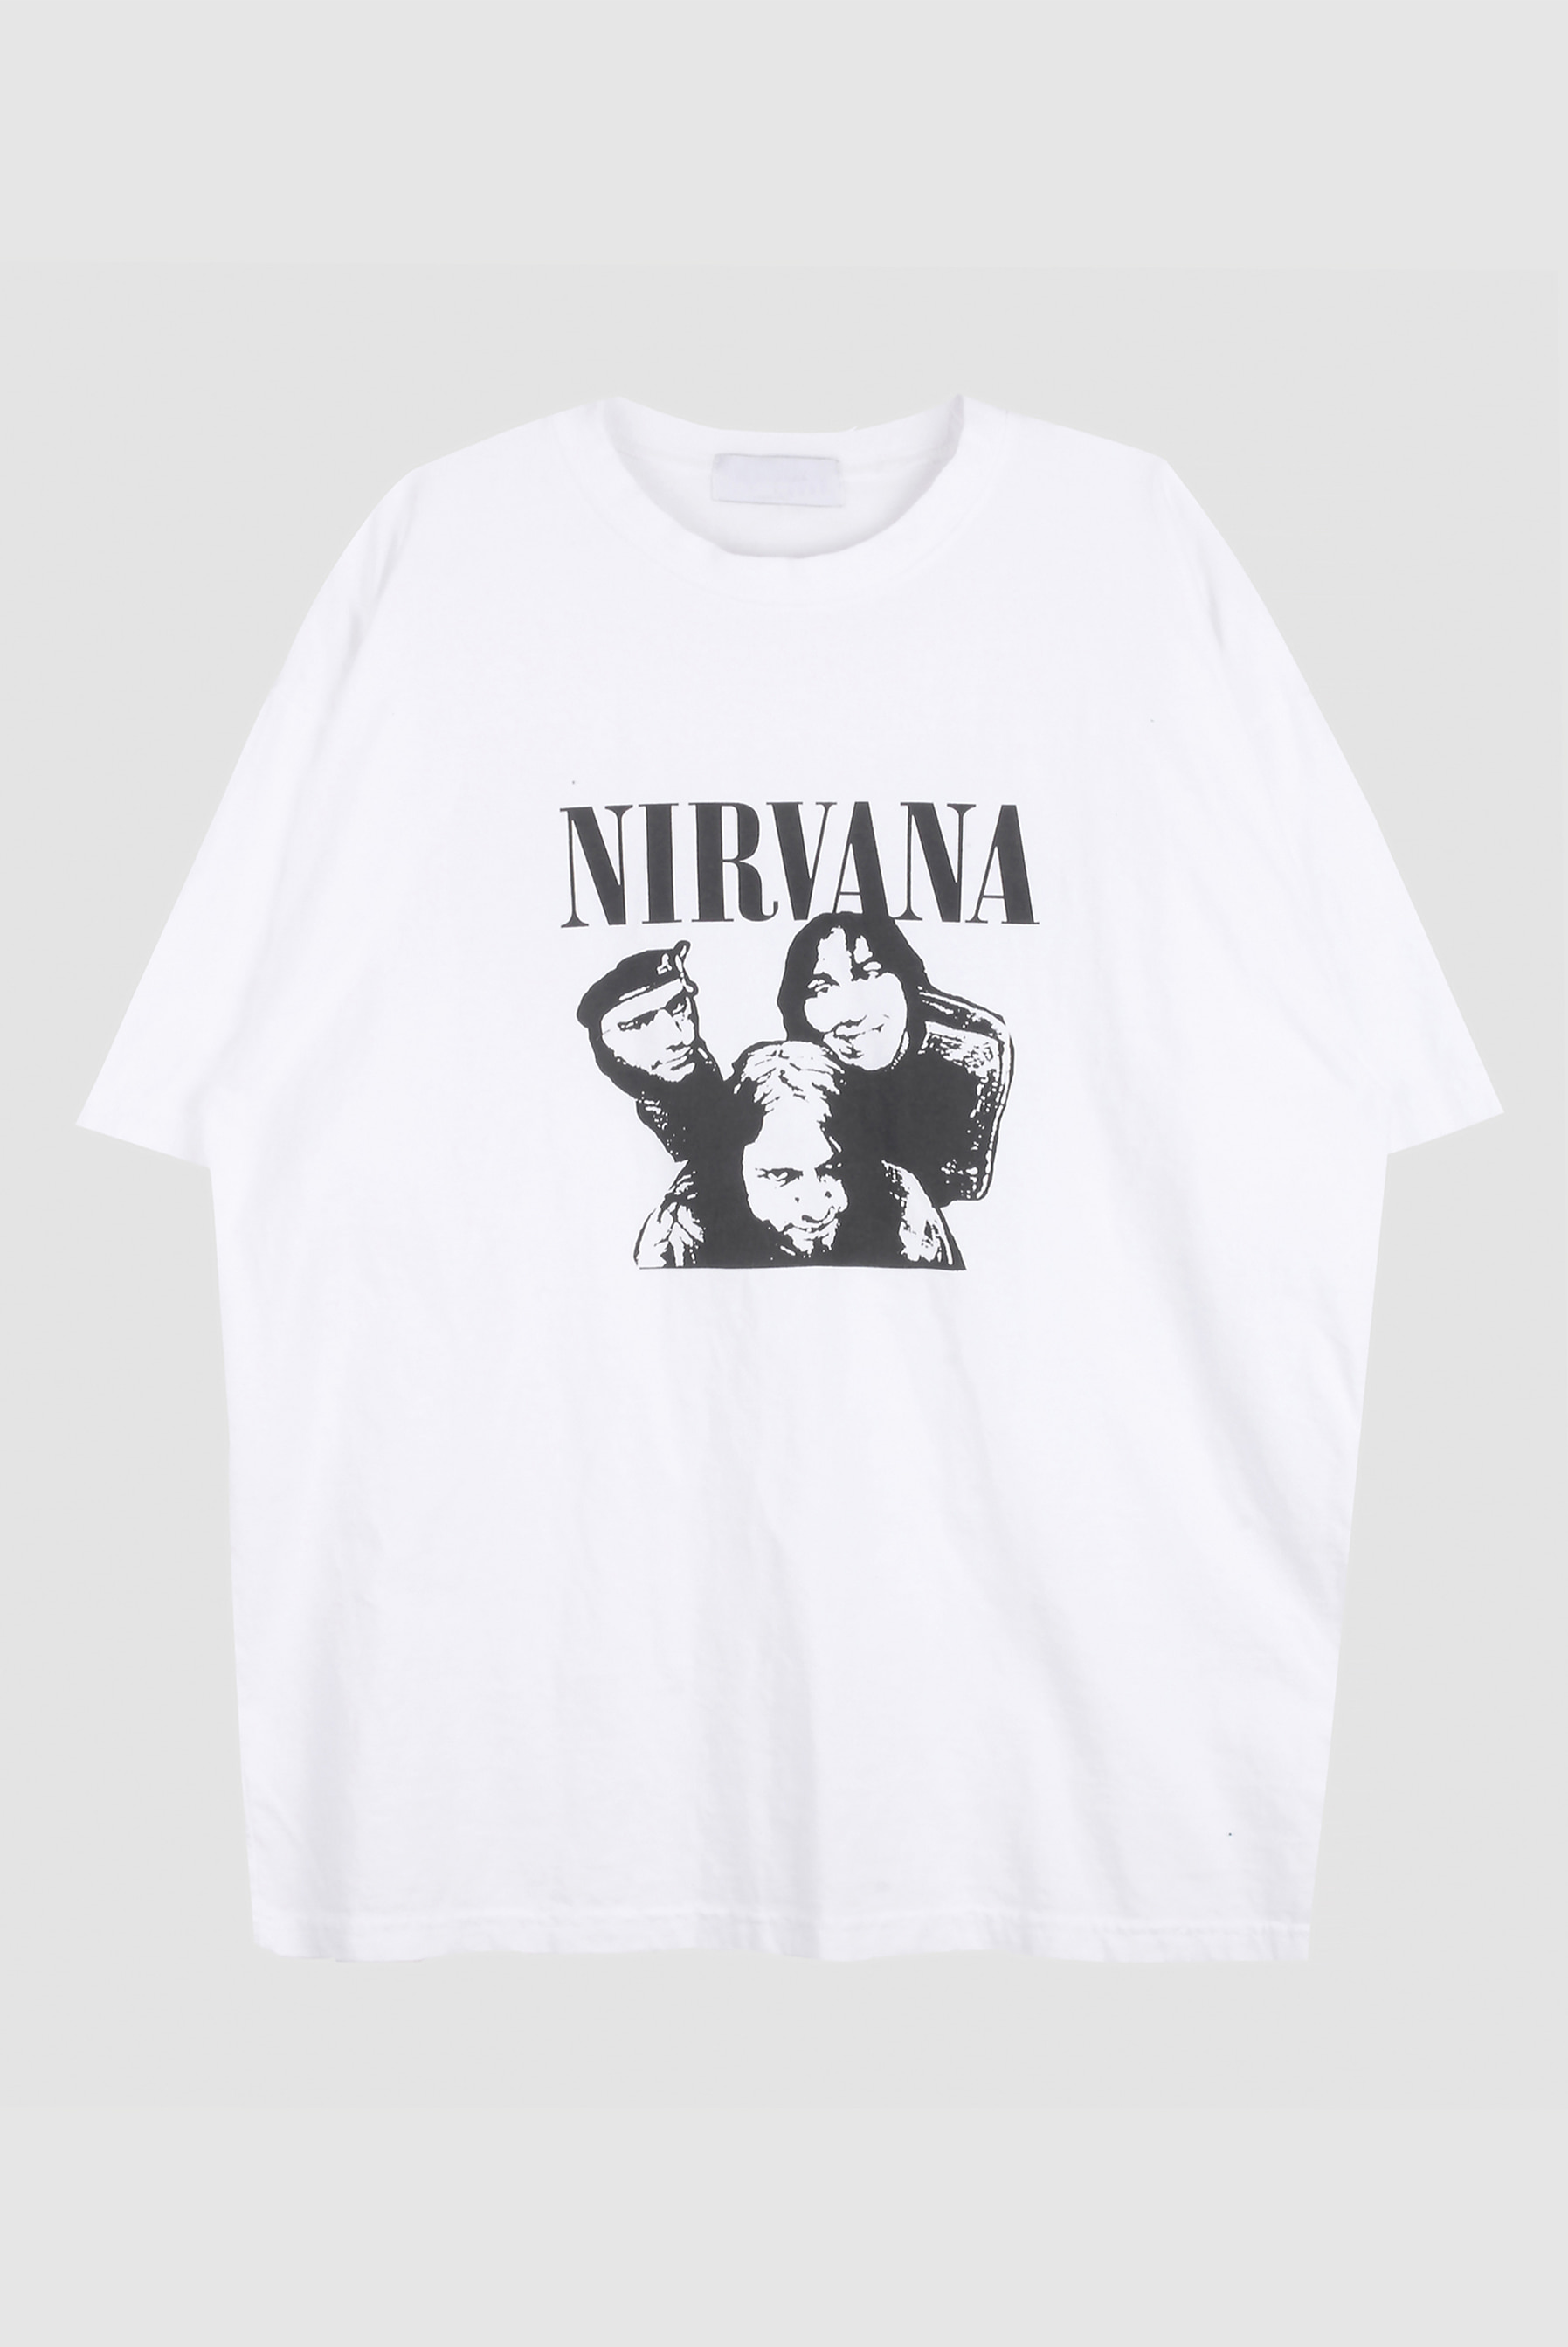 Nirvana_Sign Half_T